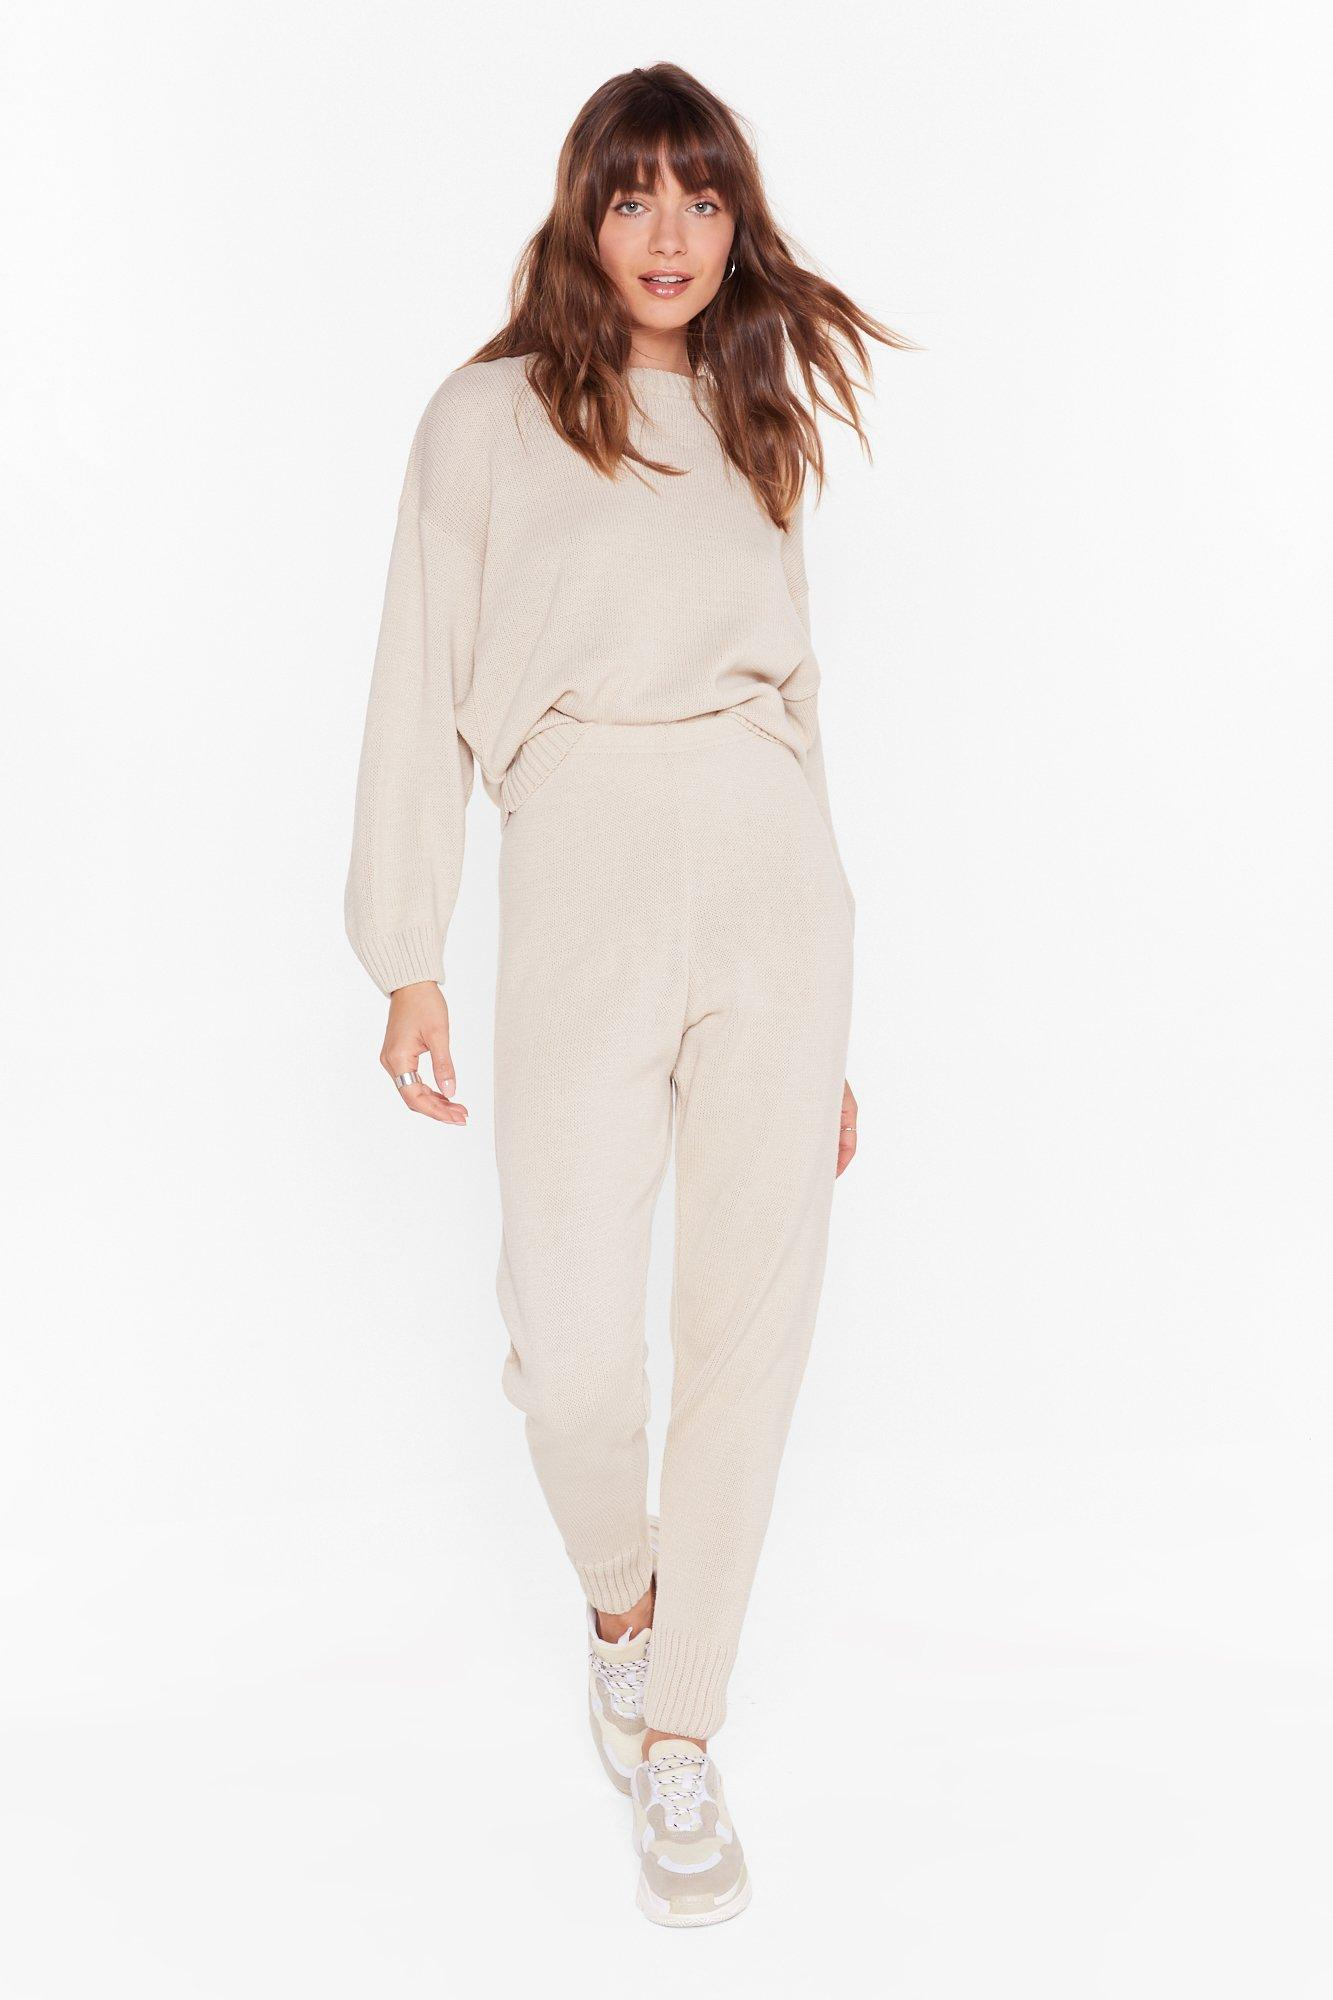 Image of Lounge What I Was Looking For Knitted Sweater and Jogger Set